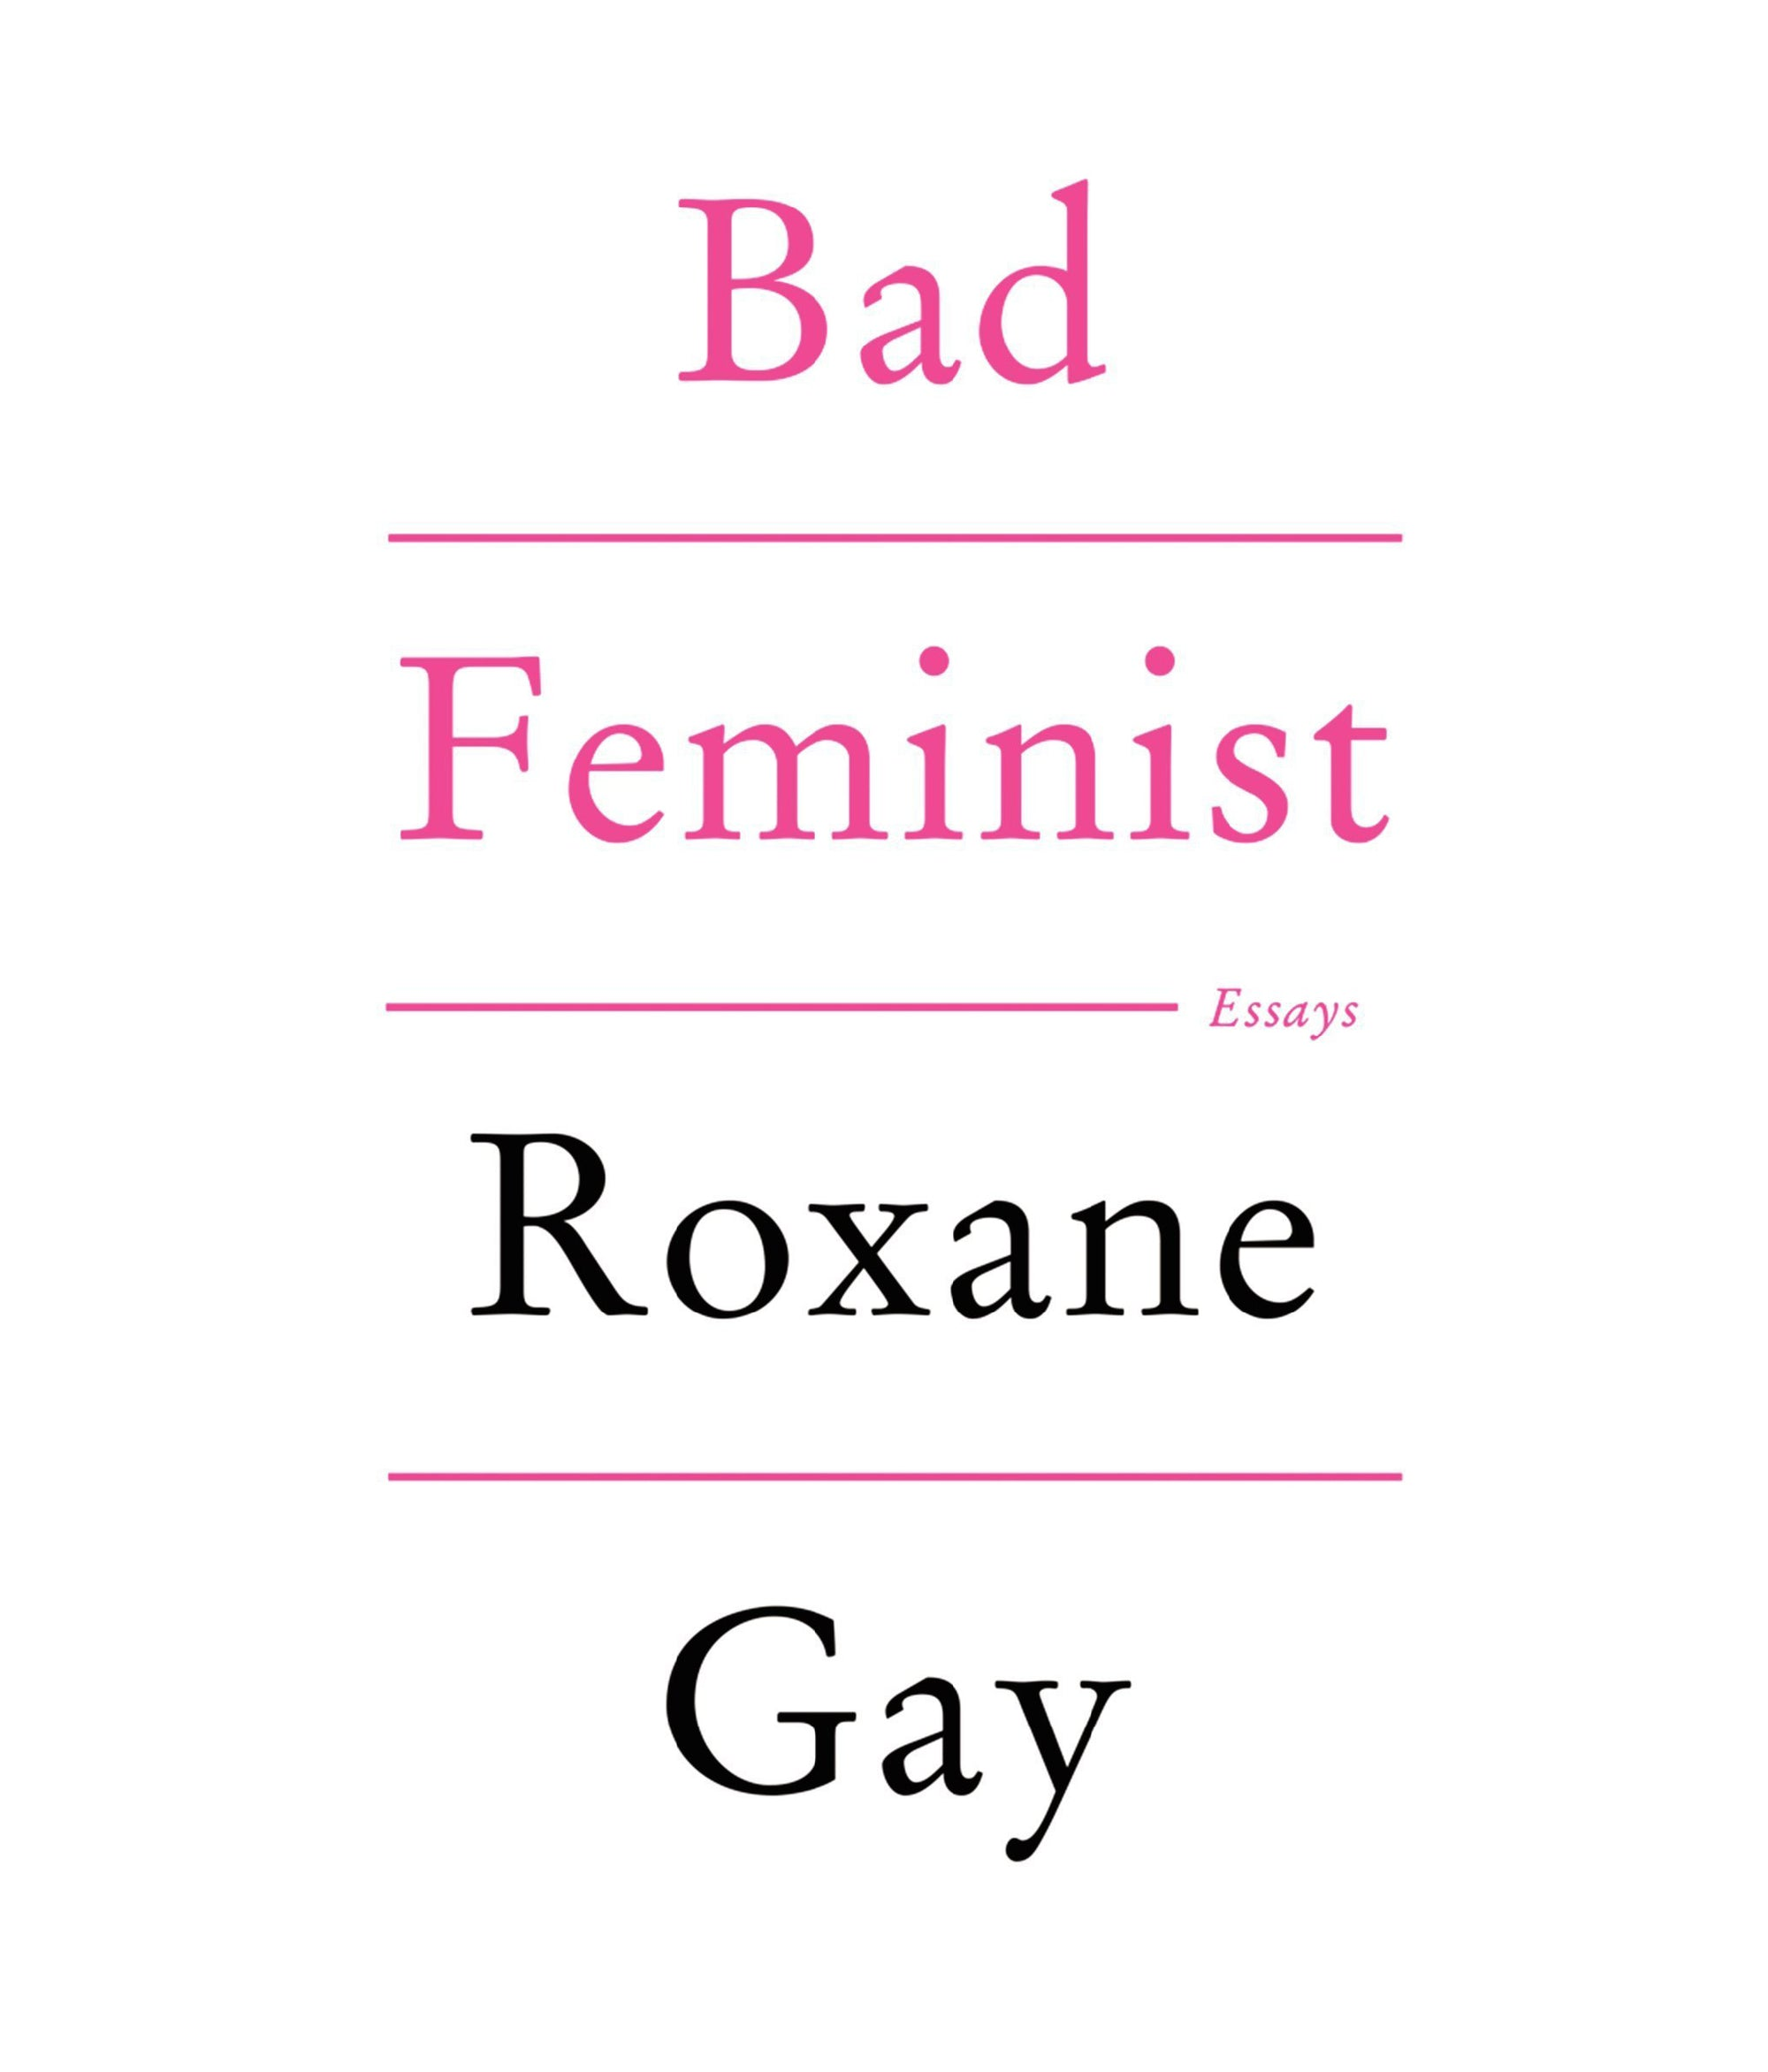 Bad Feminist Roxane Gay